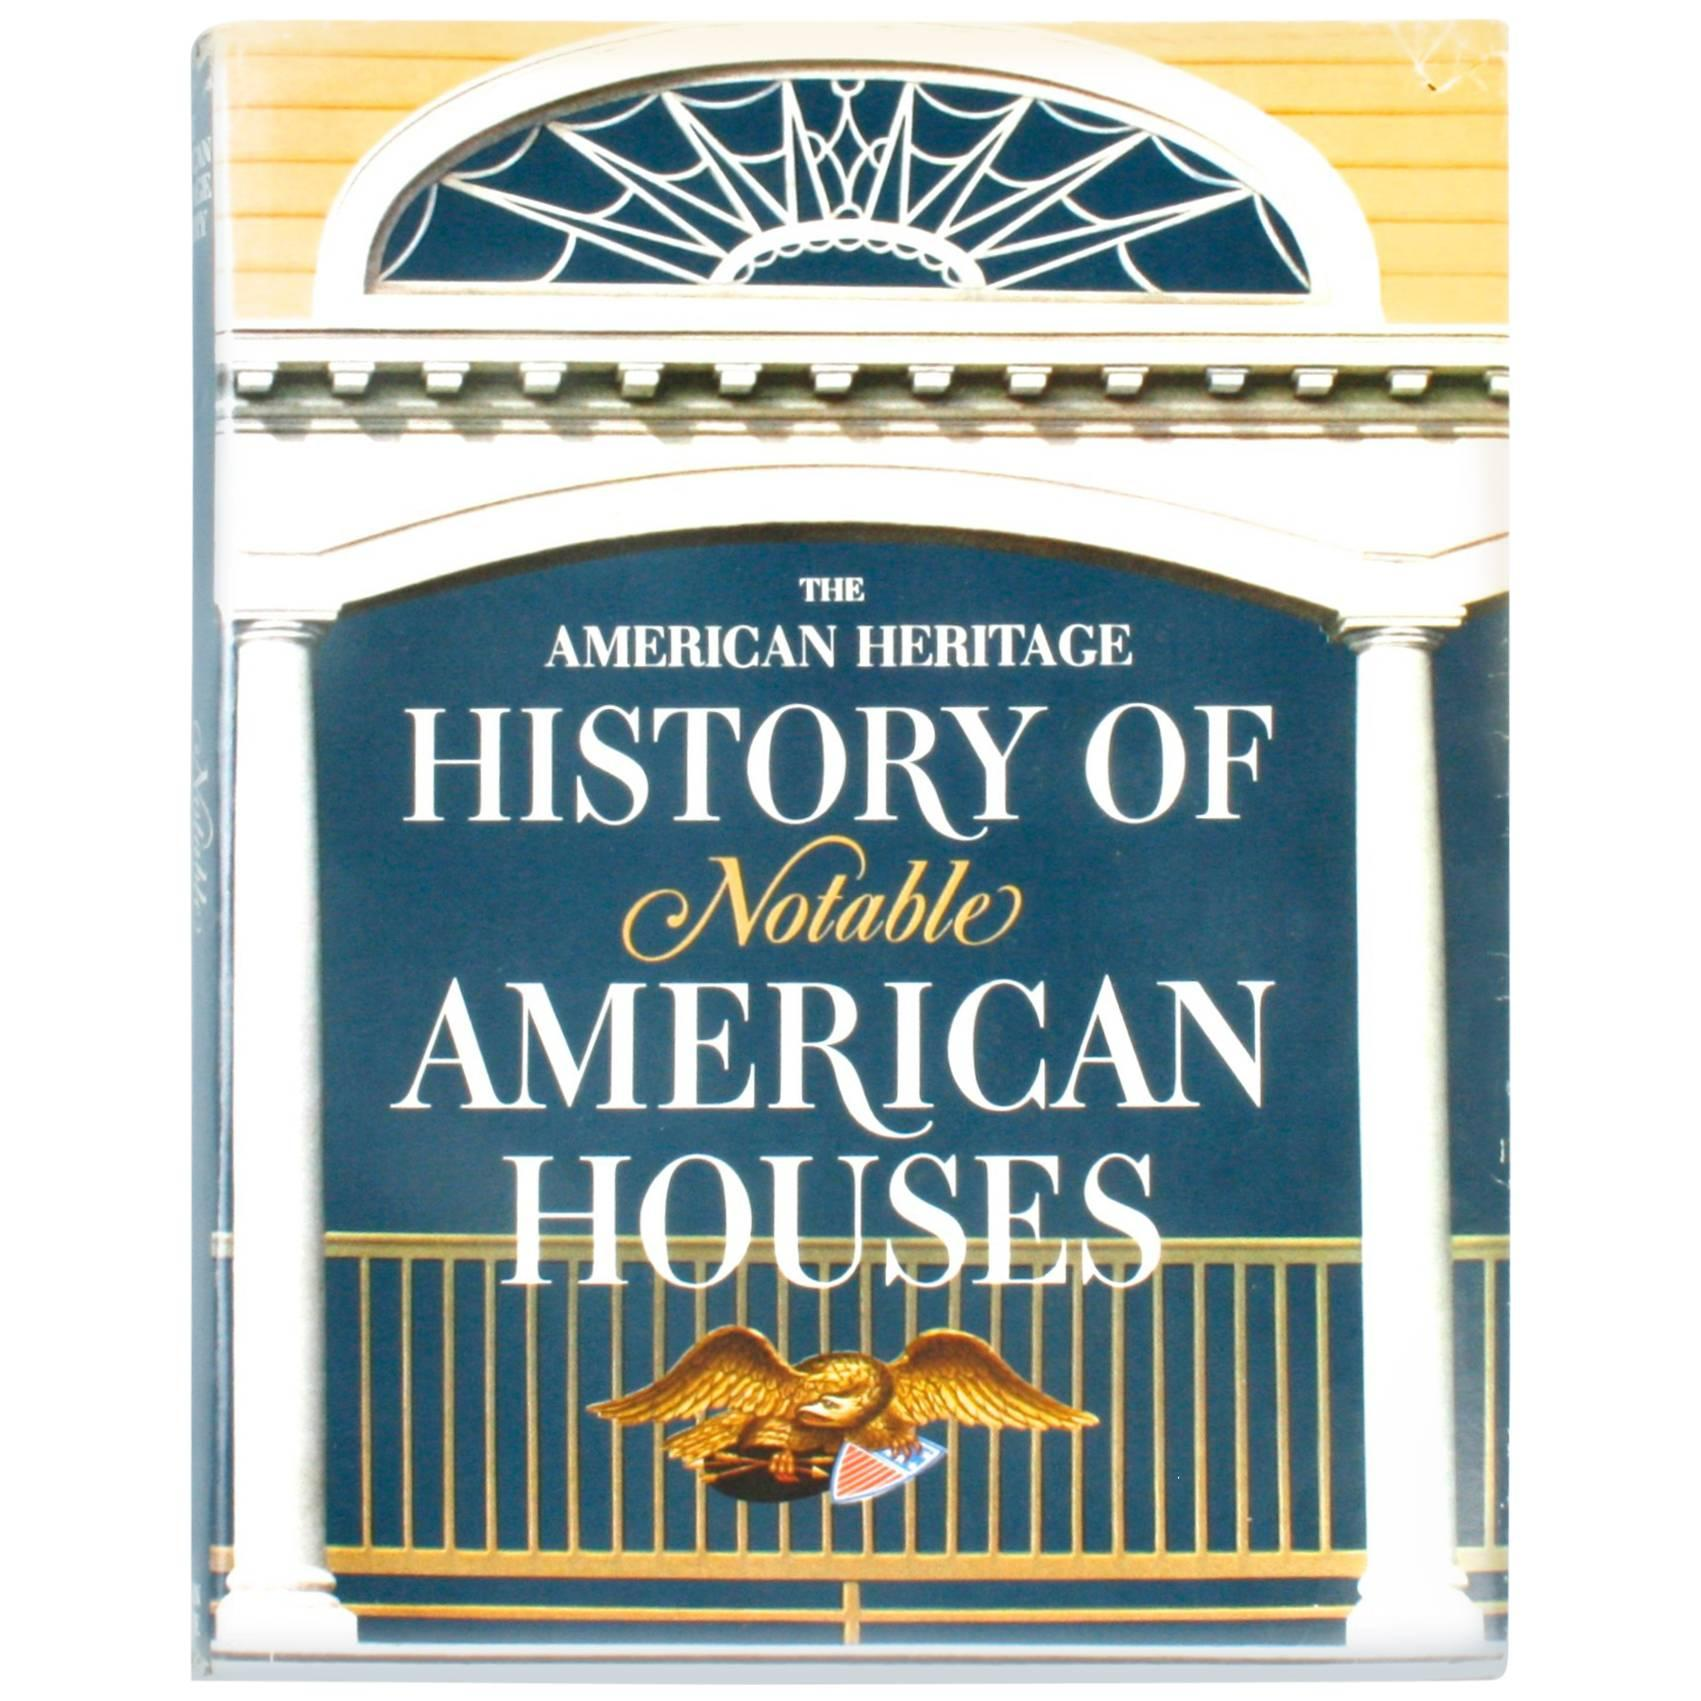 American Heritage History of Notable American Houses